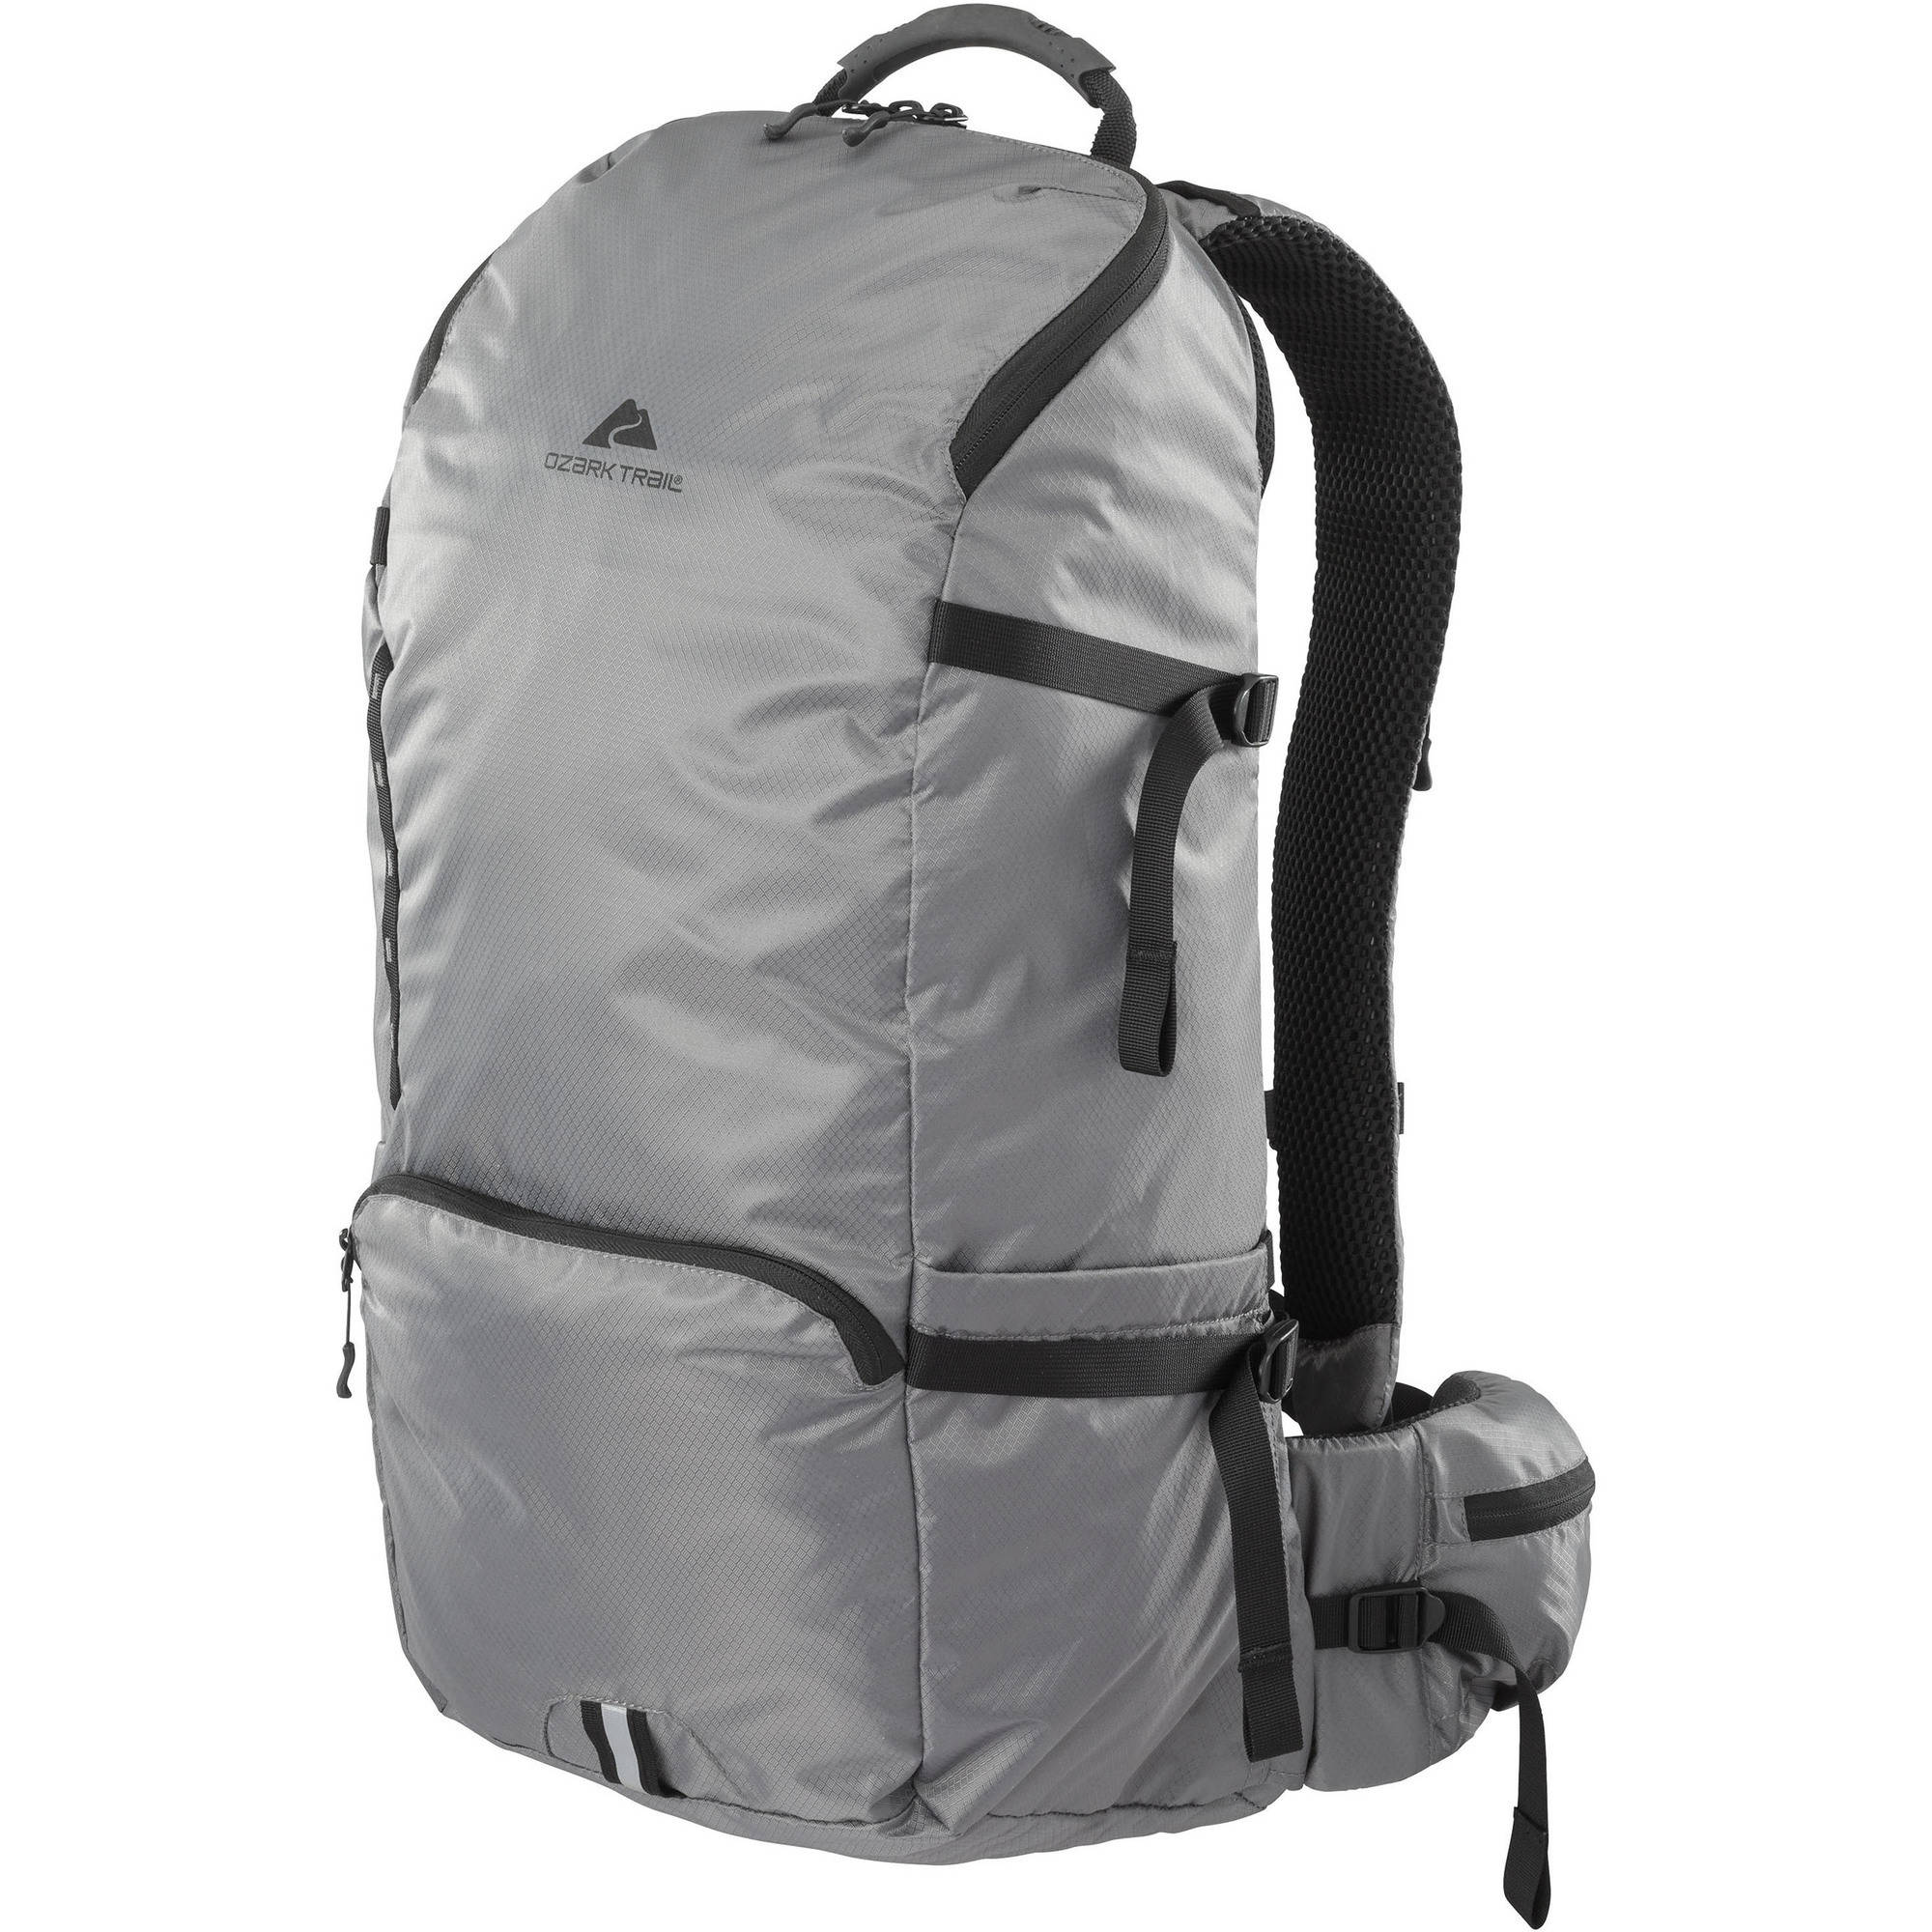 Ozark Trail Excursion Daypack by EUSEBIO SPORTING CO.,LTD